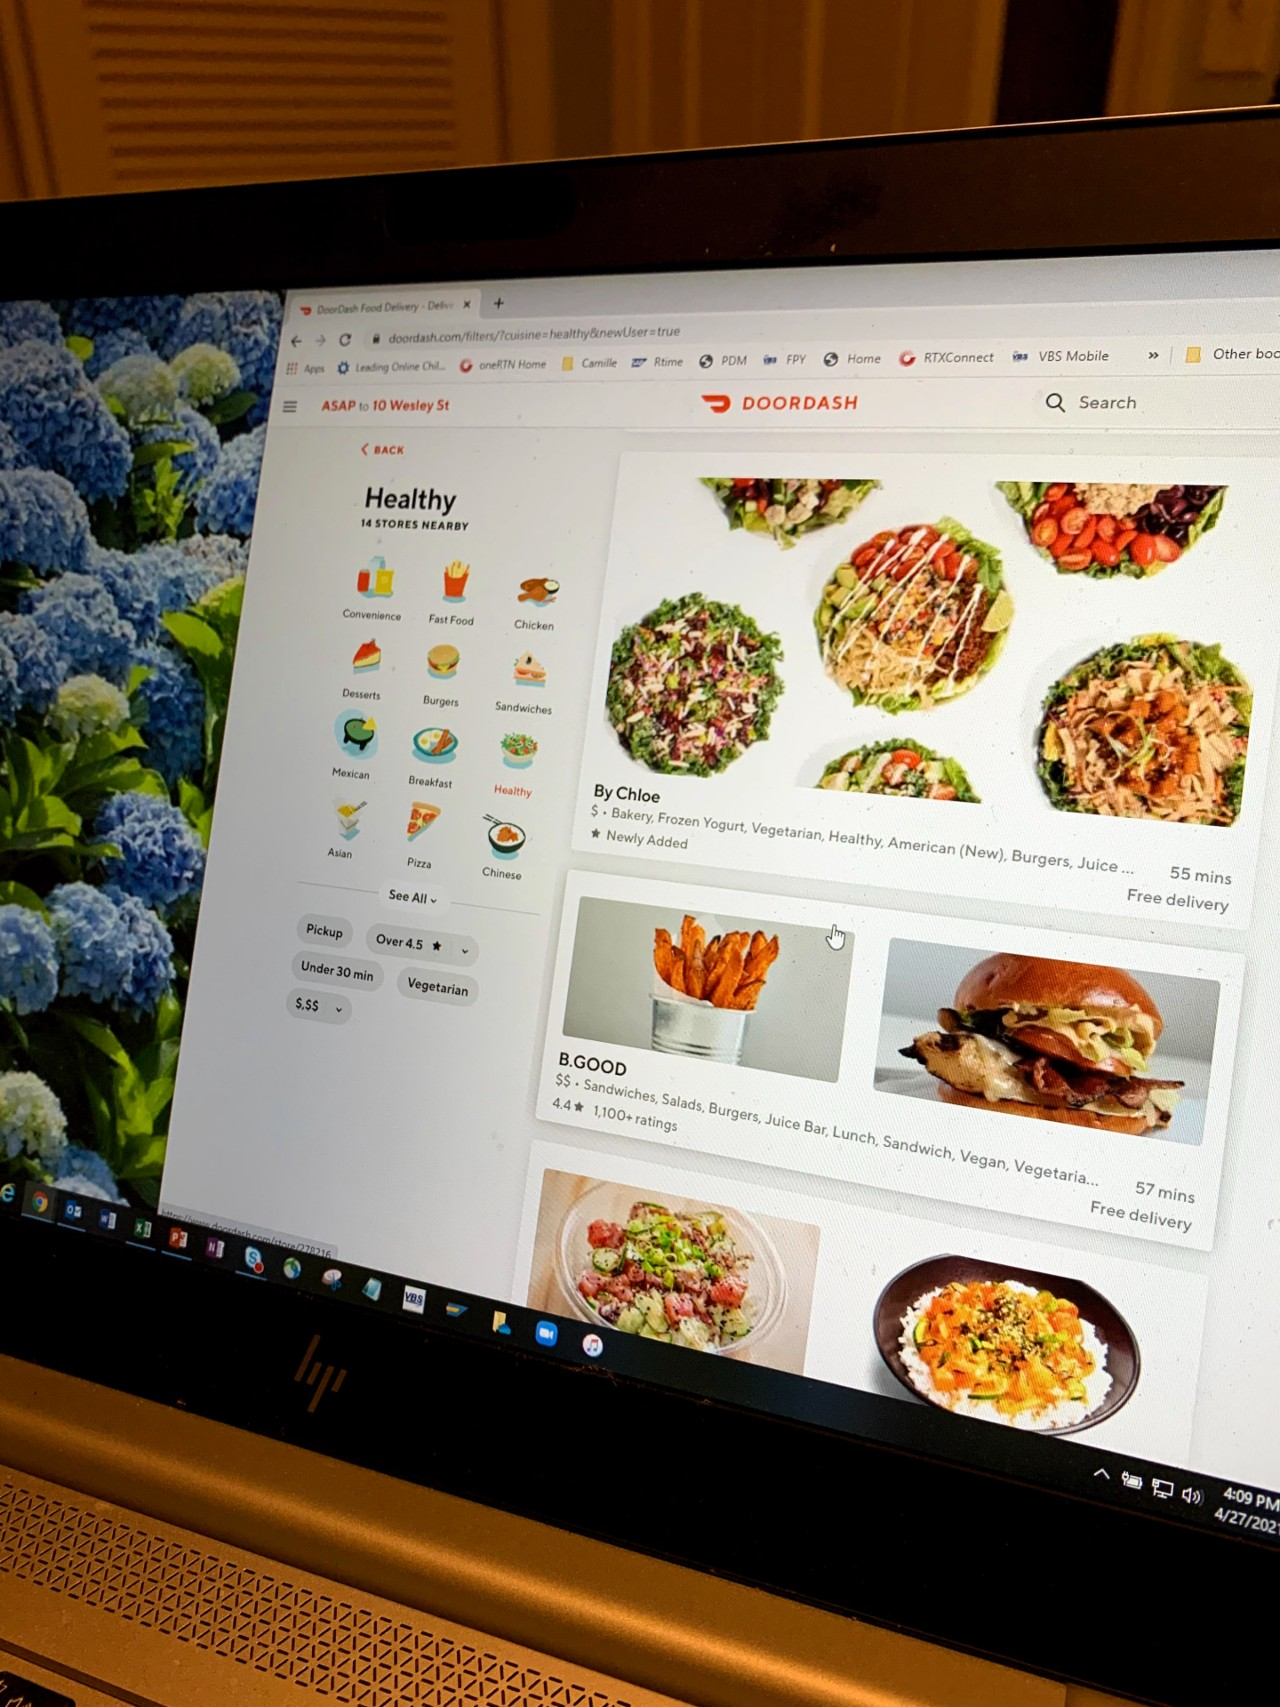 Computer screen showing background of hydrangea and Doordash webpage with healthy foods